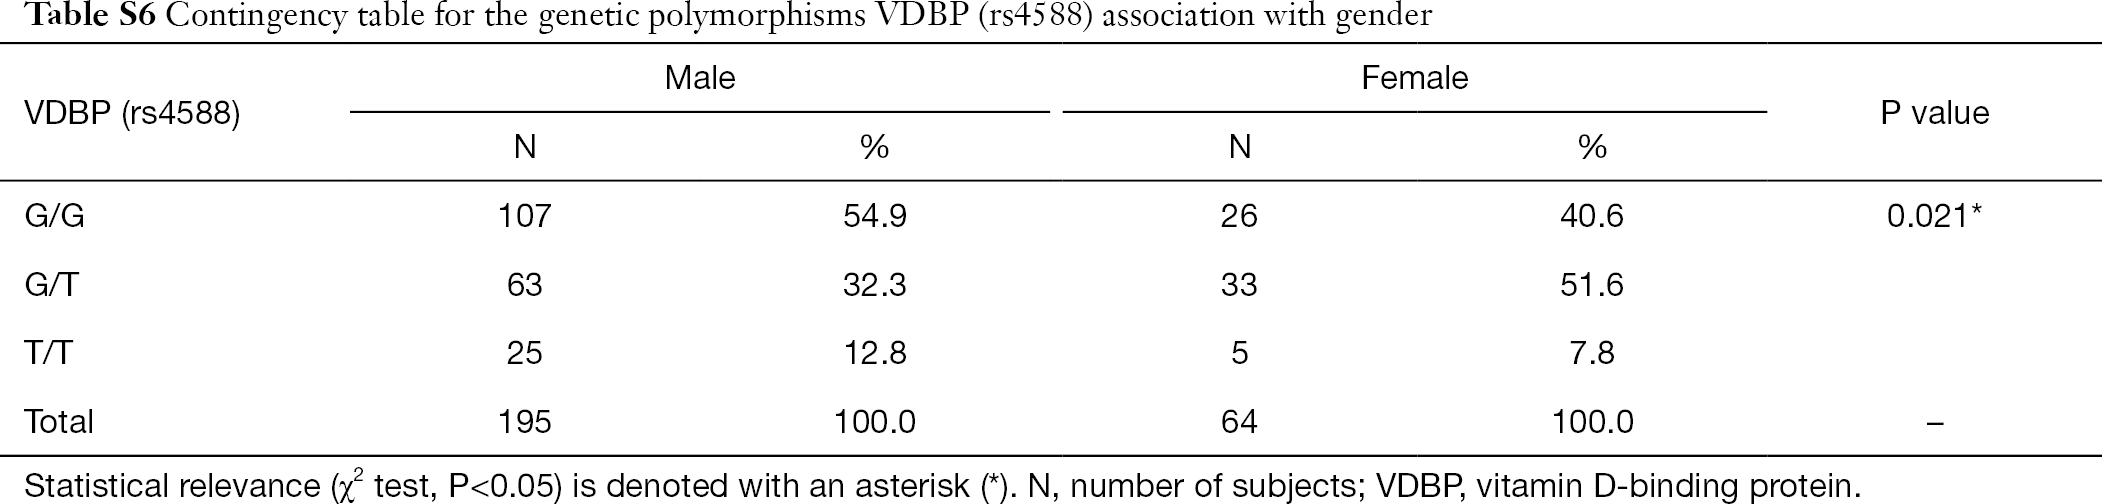 Vitamin D-binding protein (rs4588) T/T genotype is